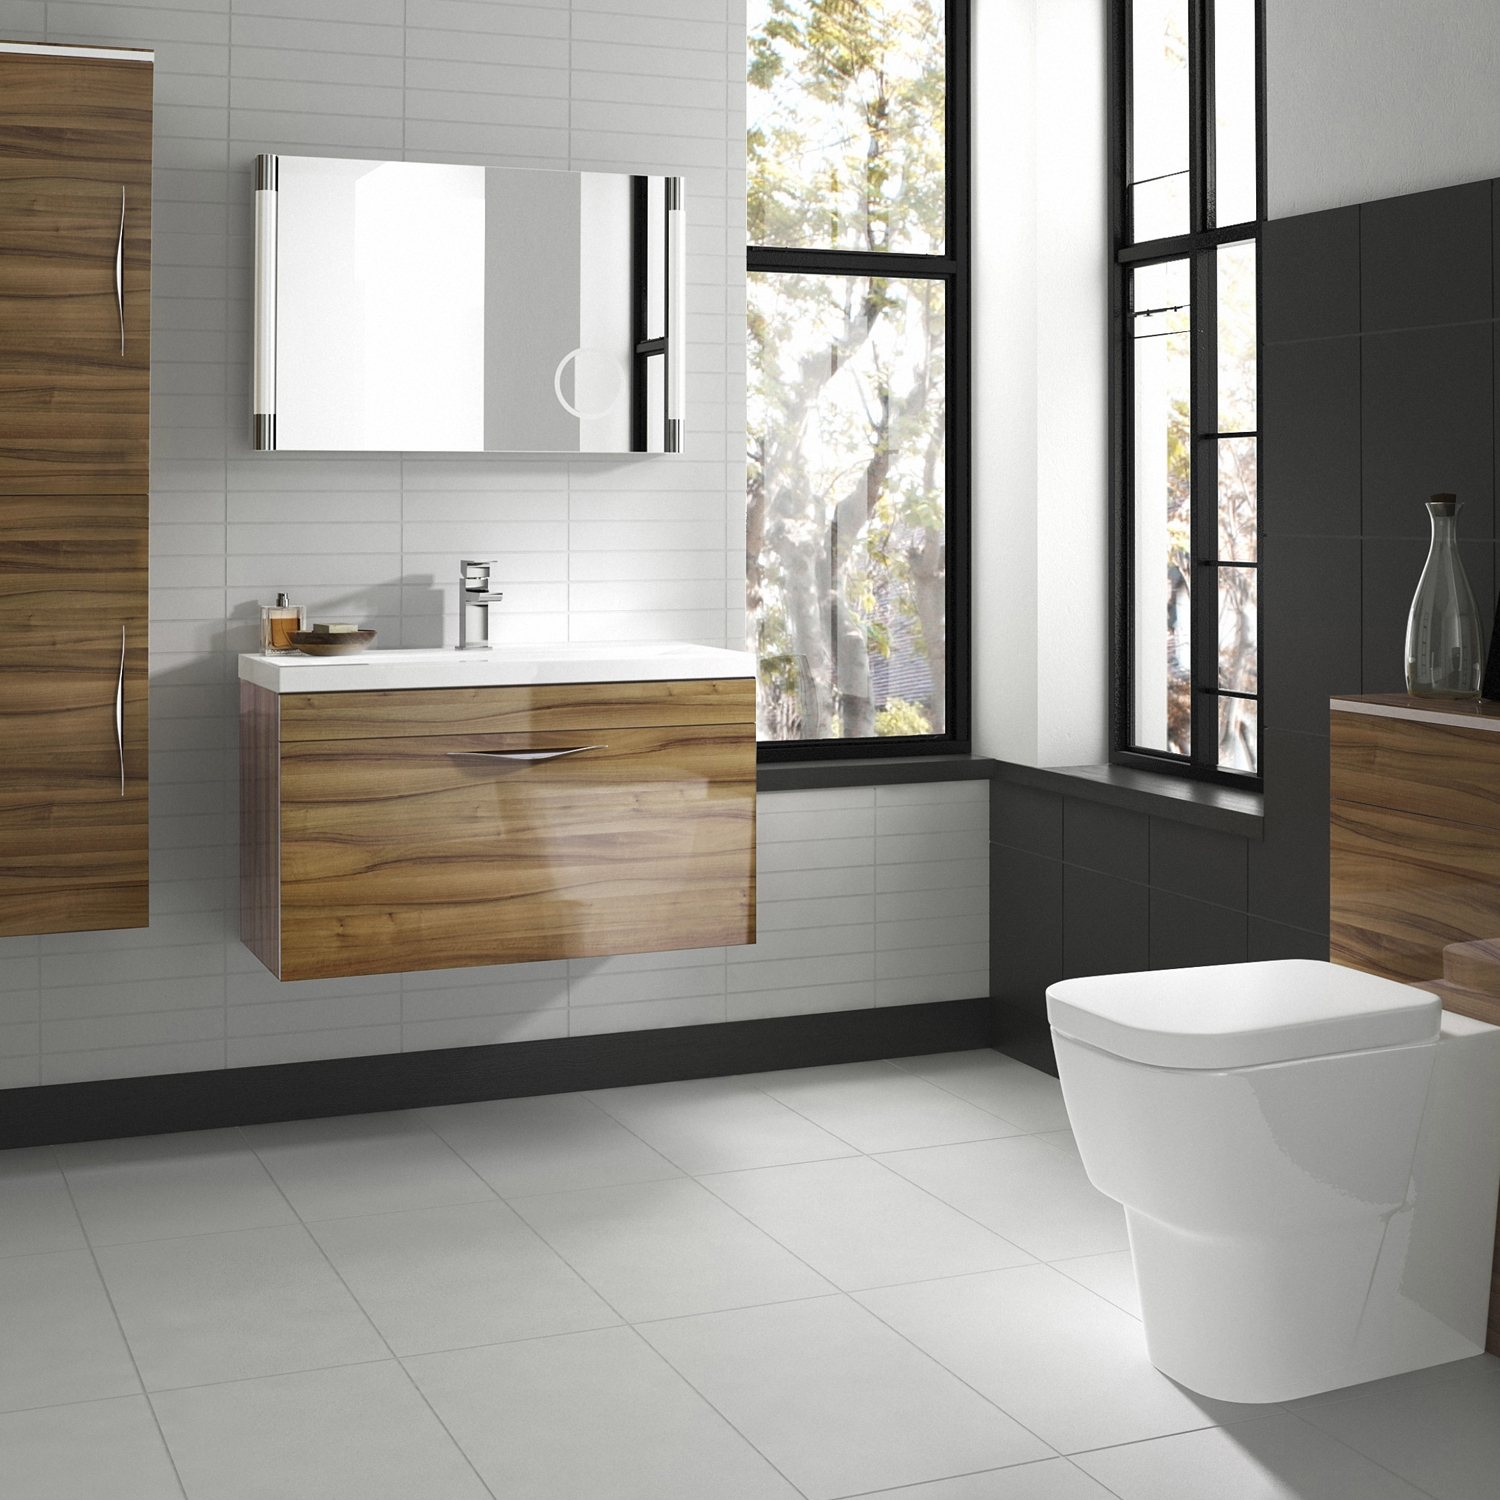 Hudson Reed Memoir Wall Mounted Vanity Unit with Basin 2 Gloss Walnut - 600mm Wide